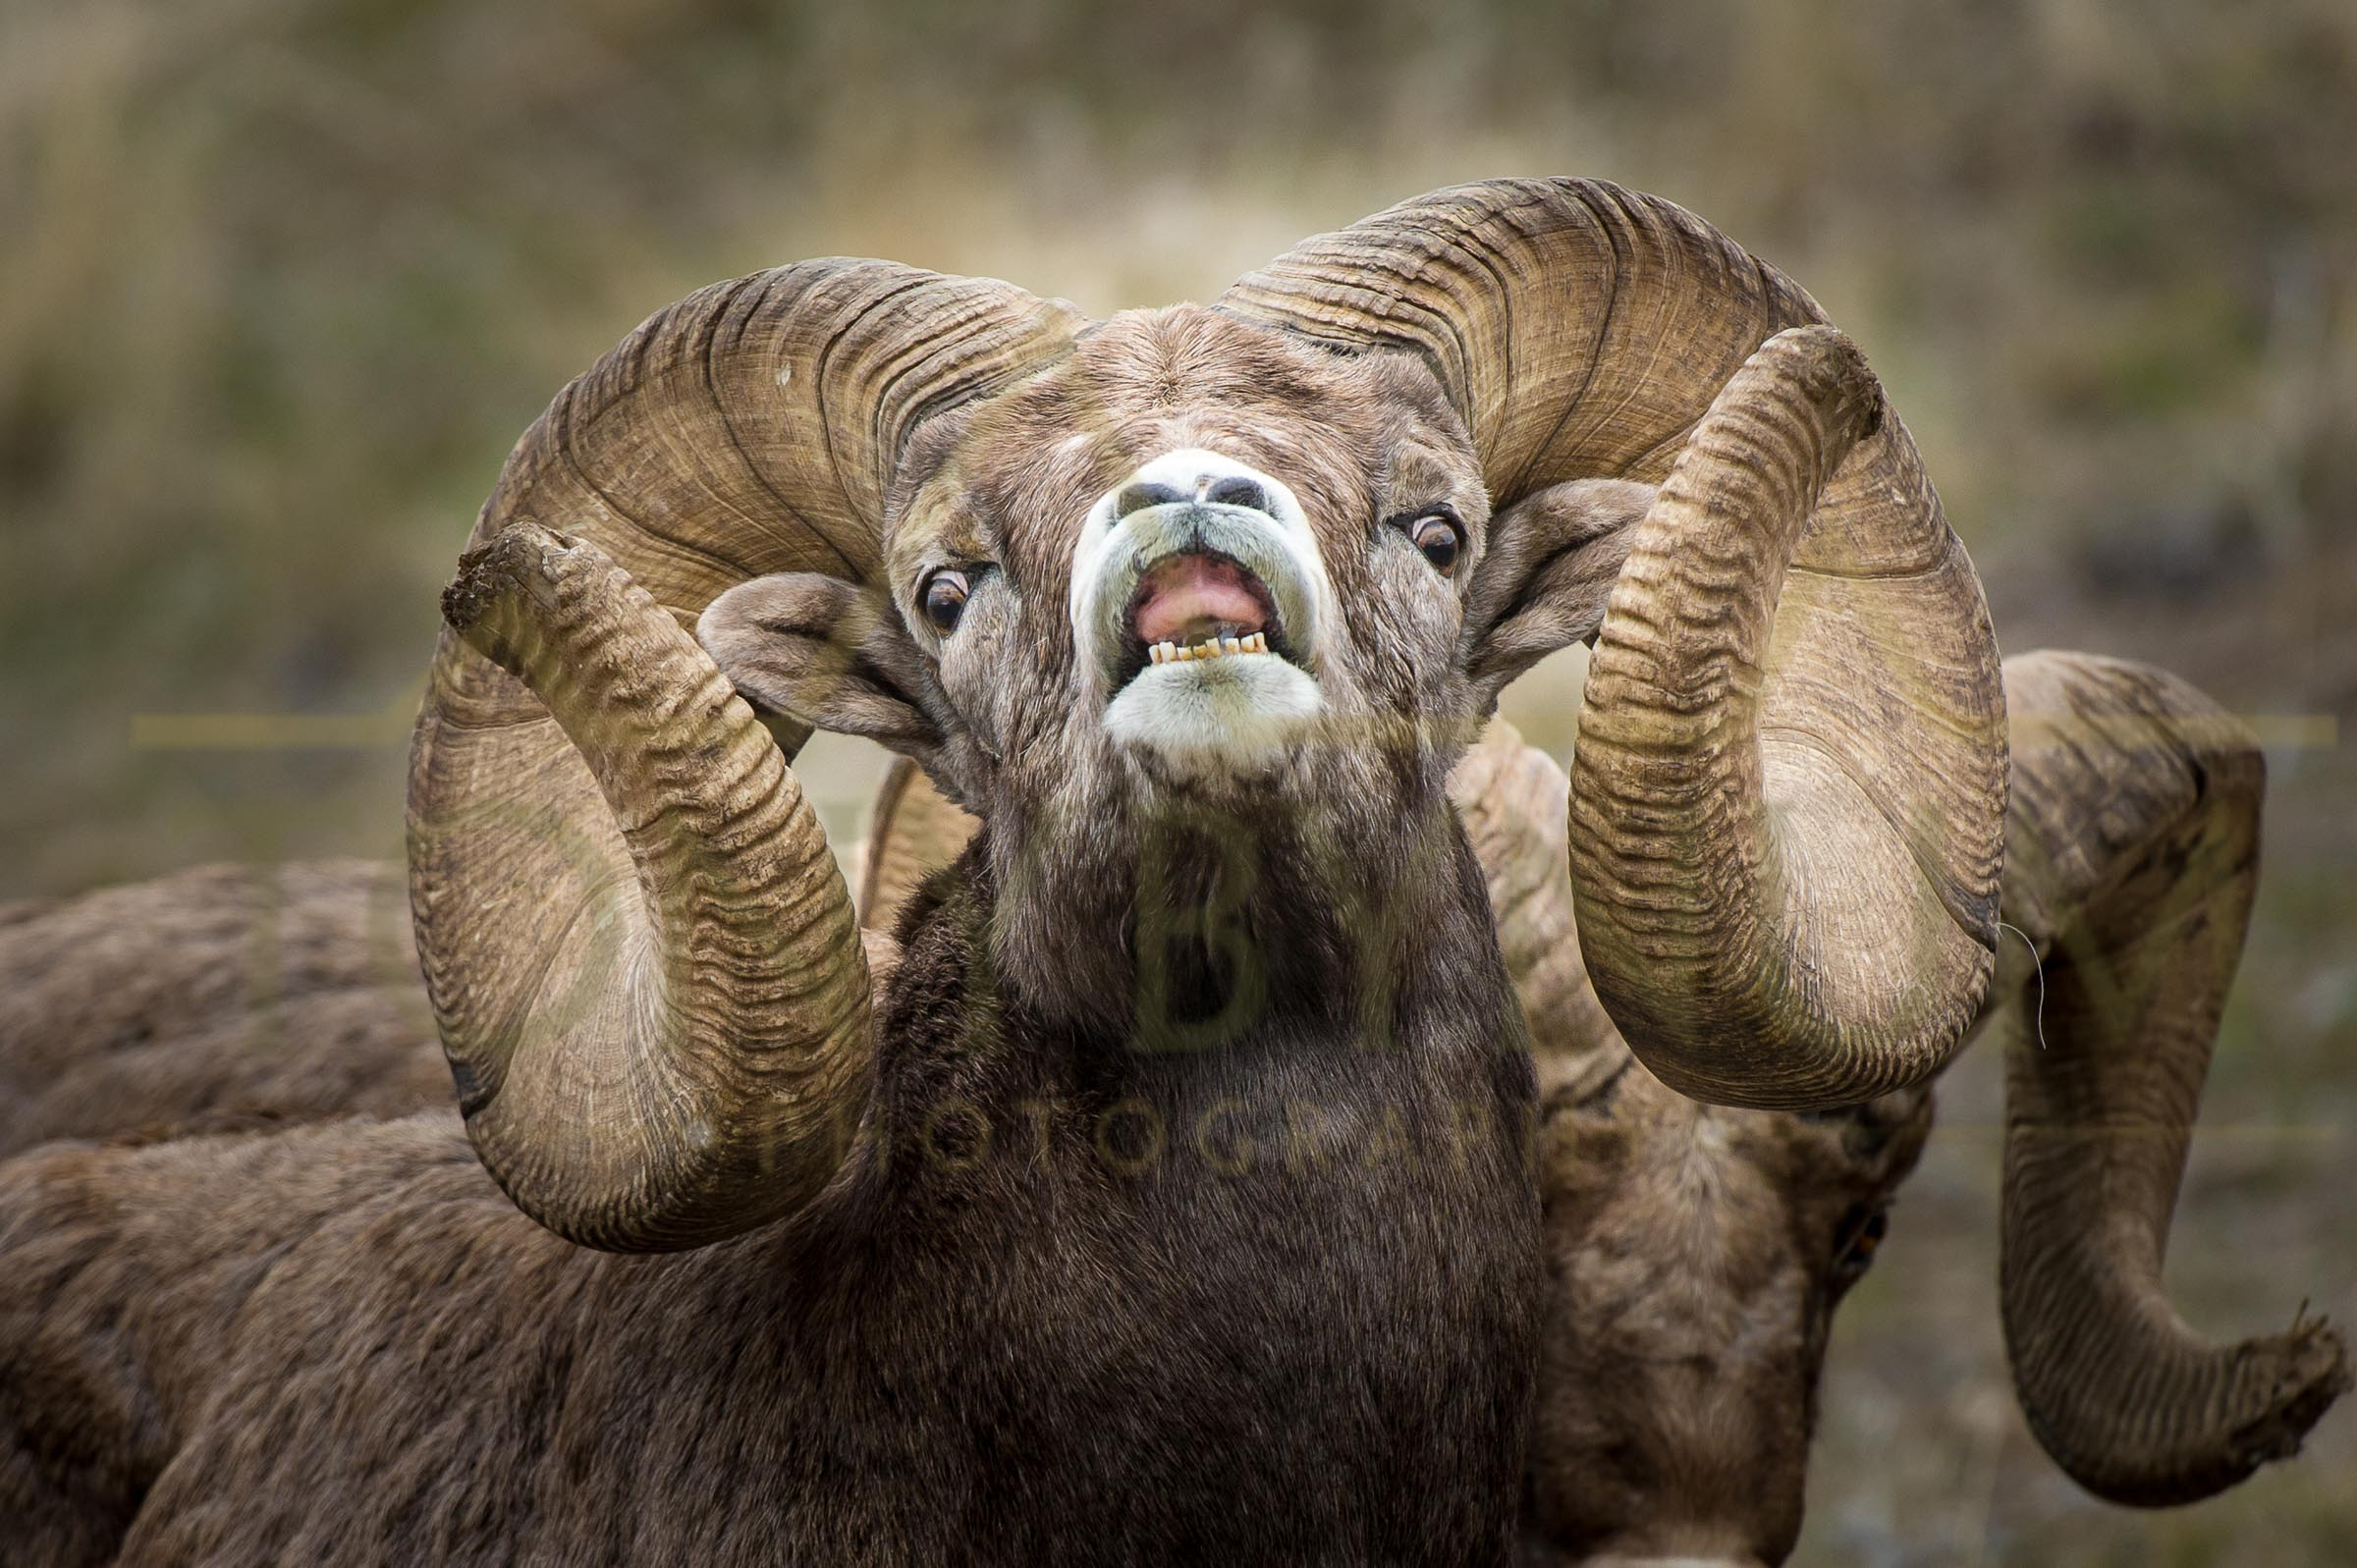 The world record bighorn ram lip curling during the rut. Wild Horse Island, Montana. ©tonybynum.com